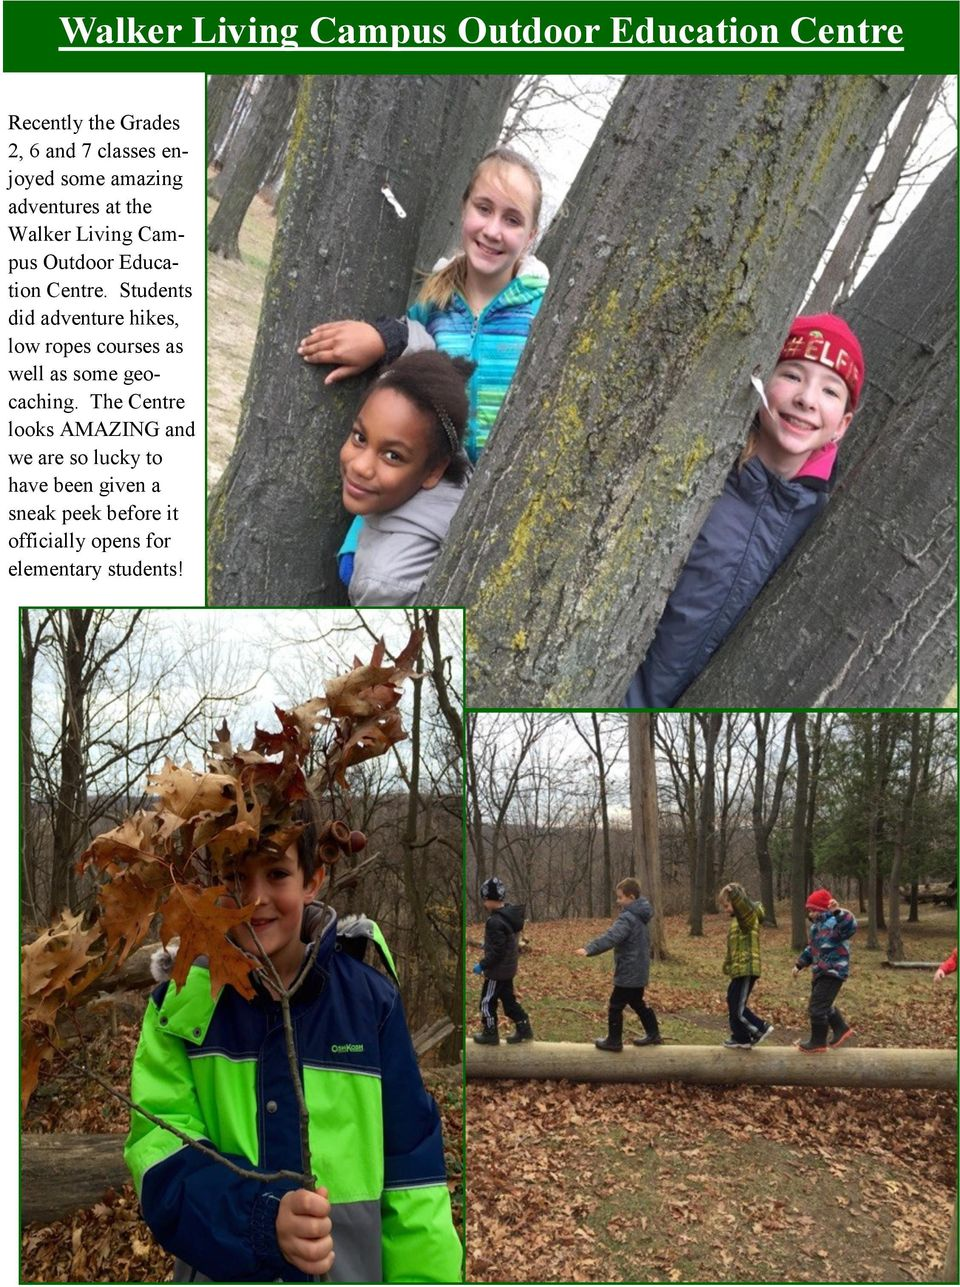 Students did adventure hikes, low ropes courses as well as some geocaching.